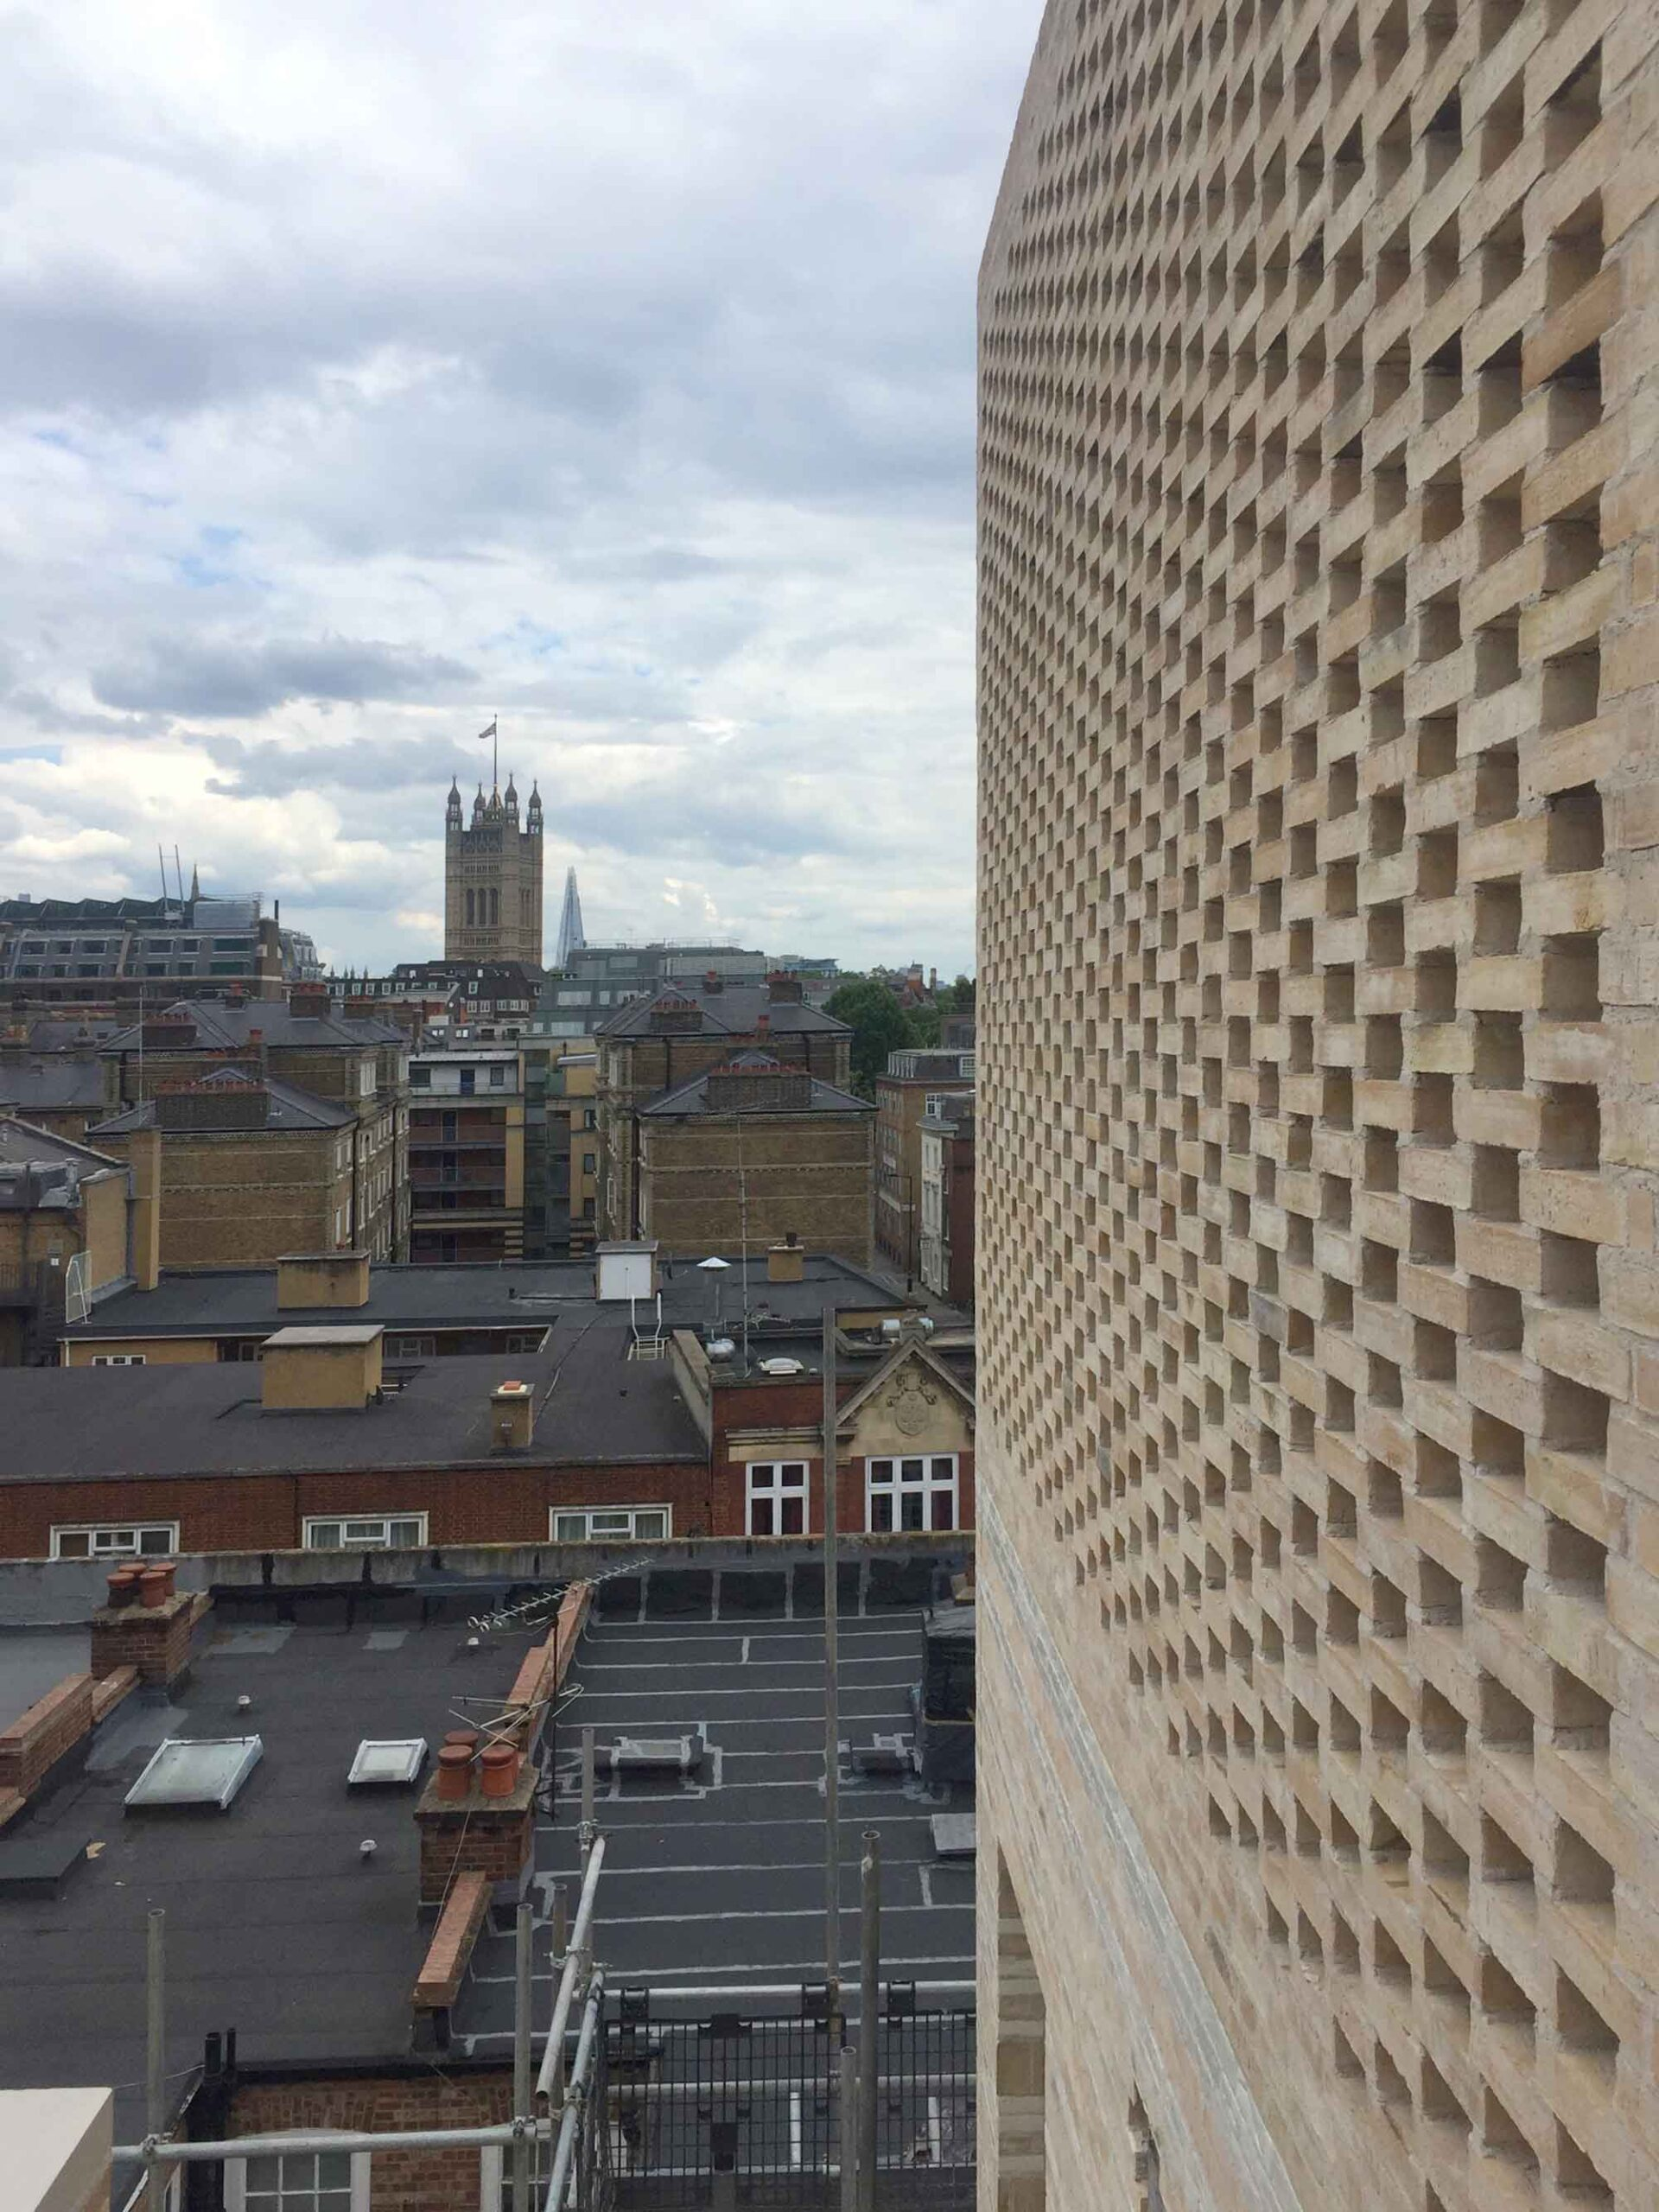 Westminster-fire-station-openstudio-architects